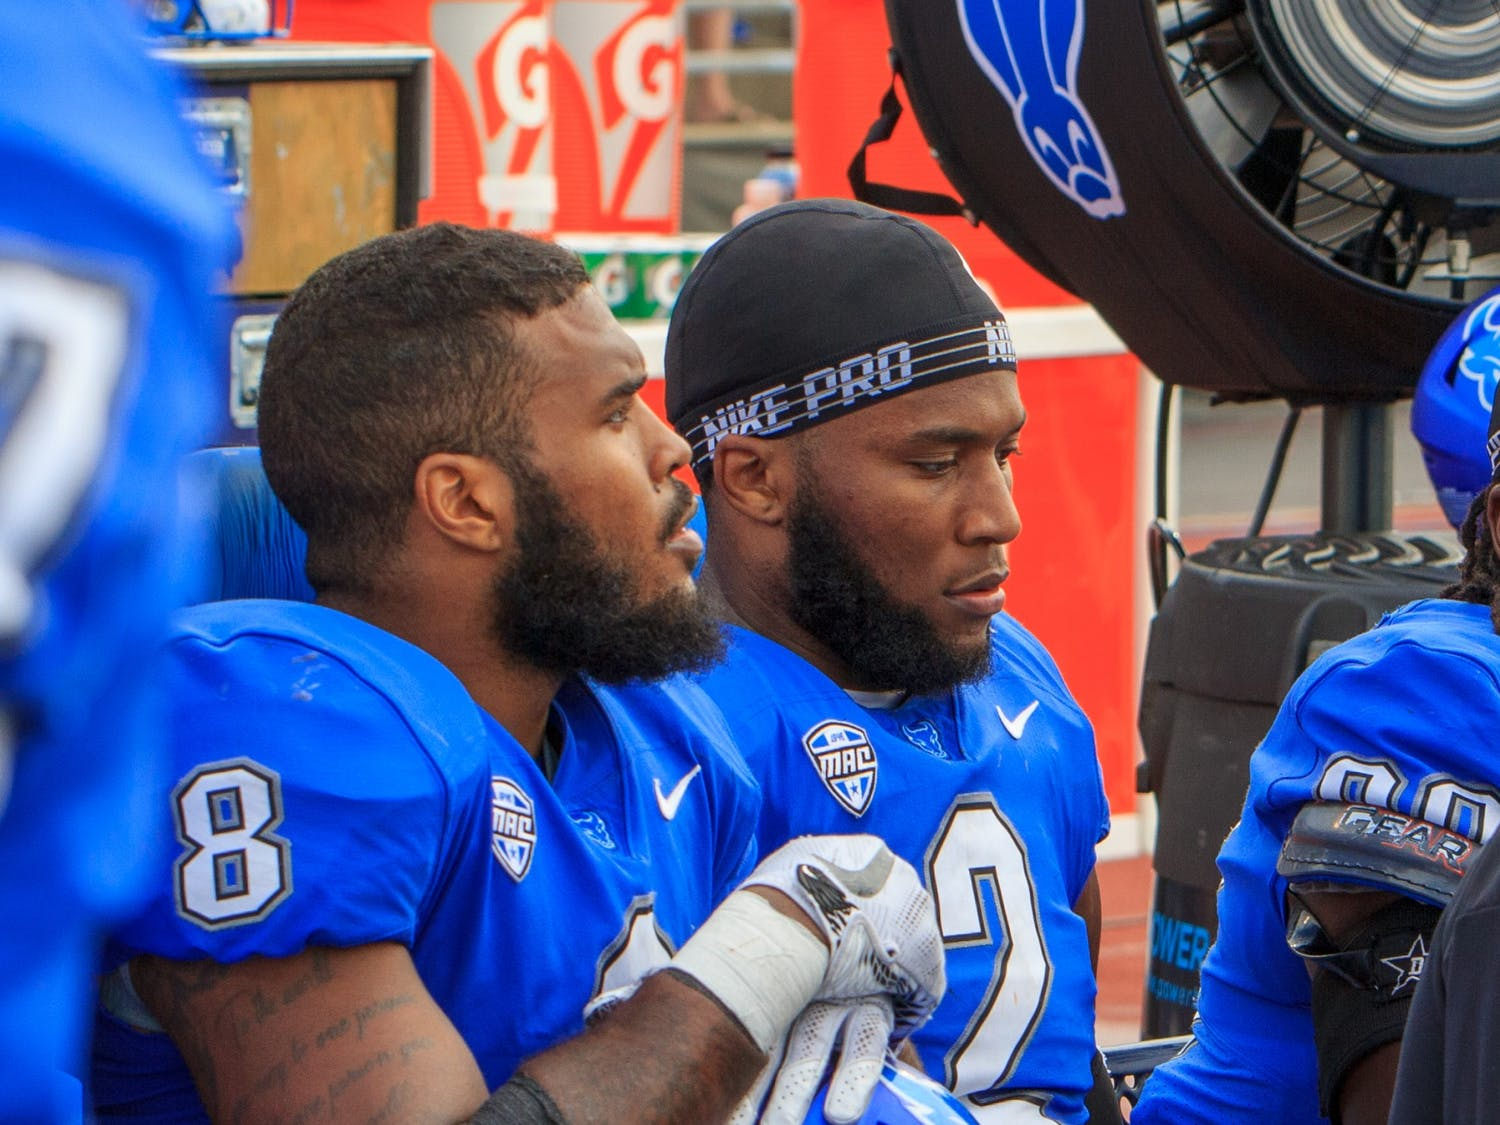 UB linebackers Kadofi Wright (2) and James Patterson (8) sit on the sidelines during a recent game. The Bulls lost to Kent State, 43-38, on Saturday.